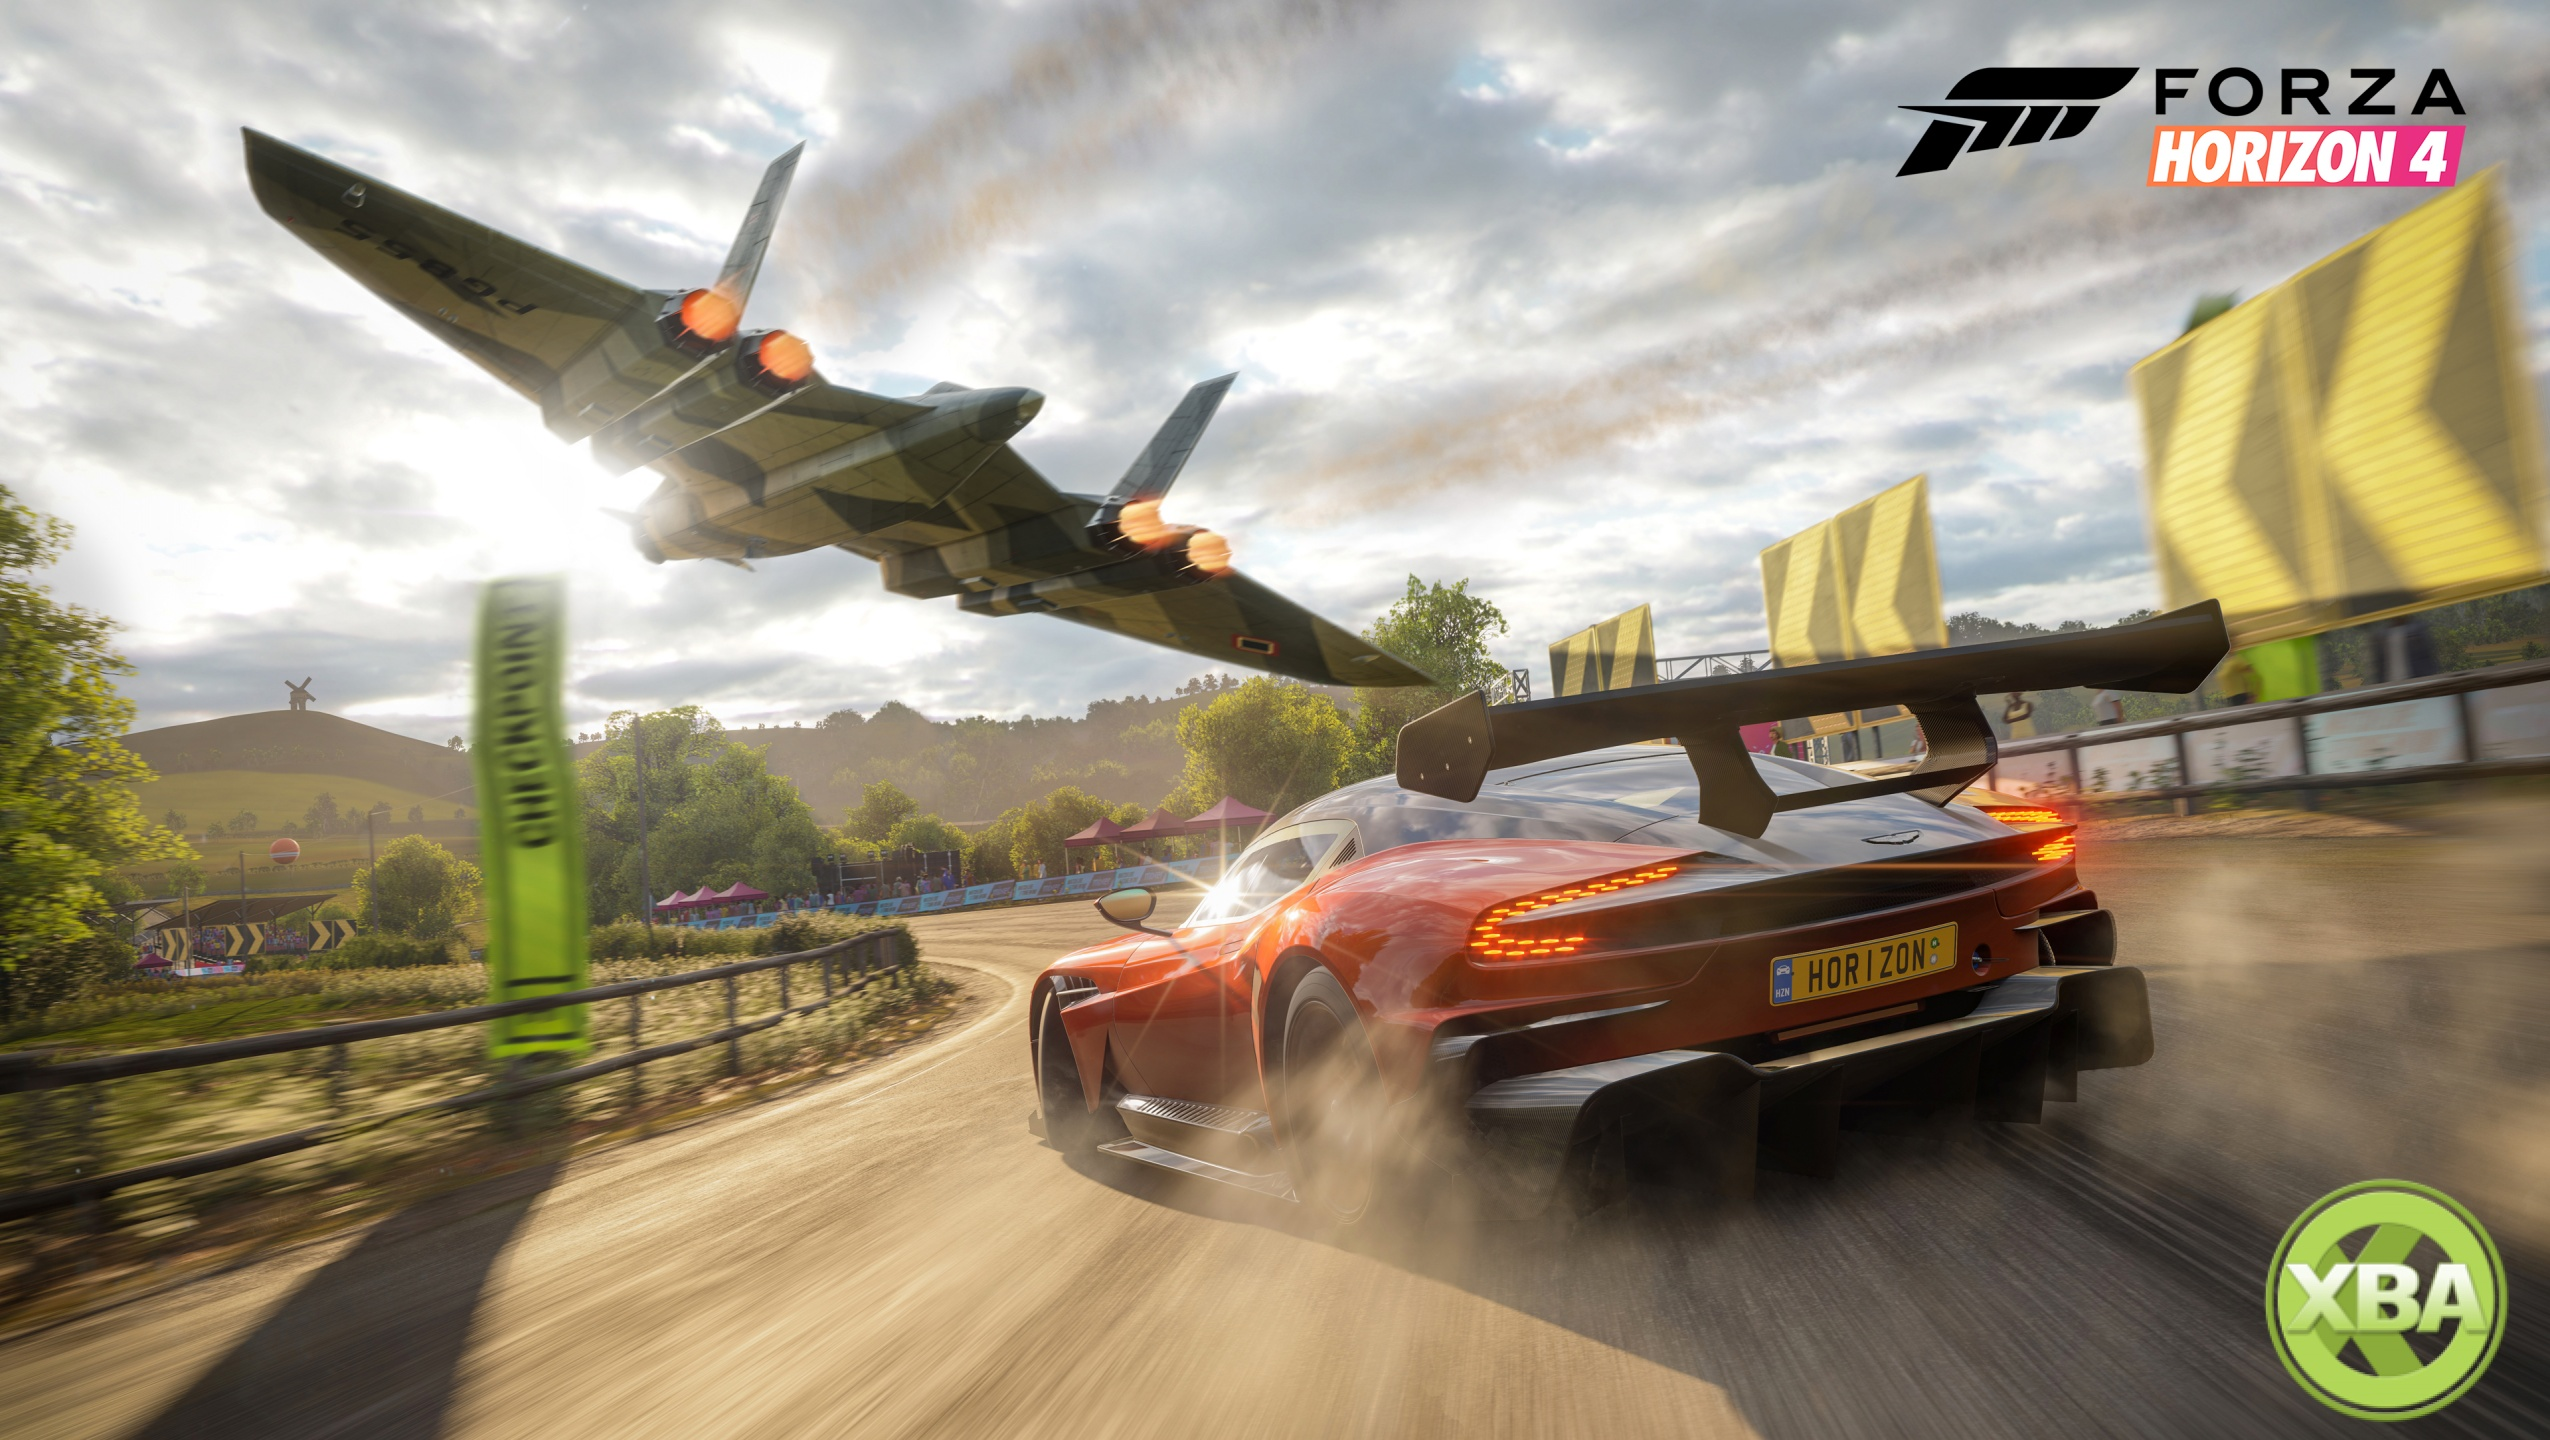 Forza Horizon 4 Goes Gold, Gets A Demo And James Bond DLC